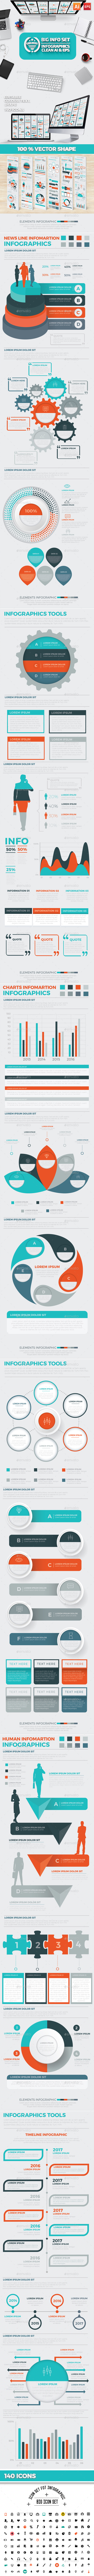 Infographic Set Design - Infographics